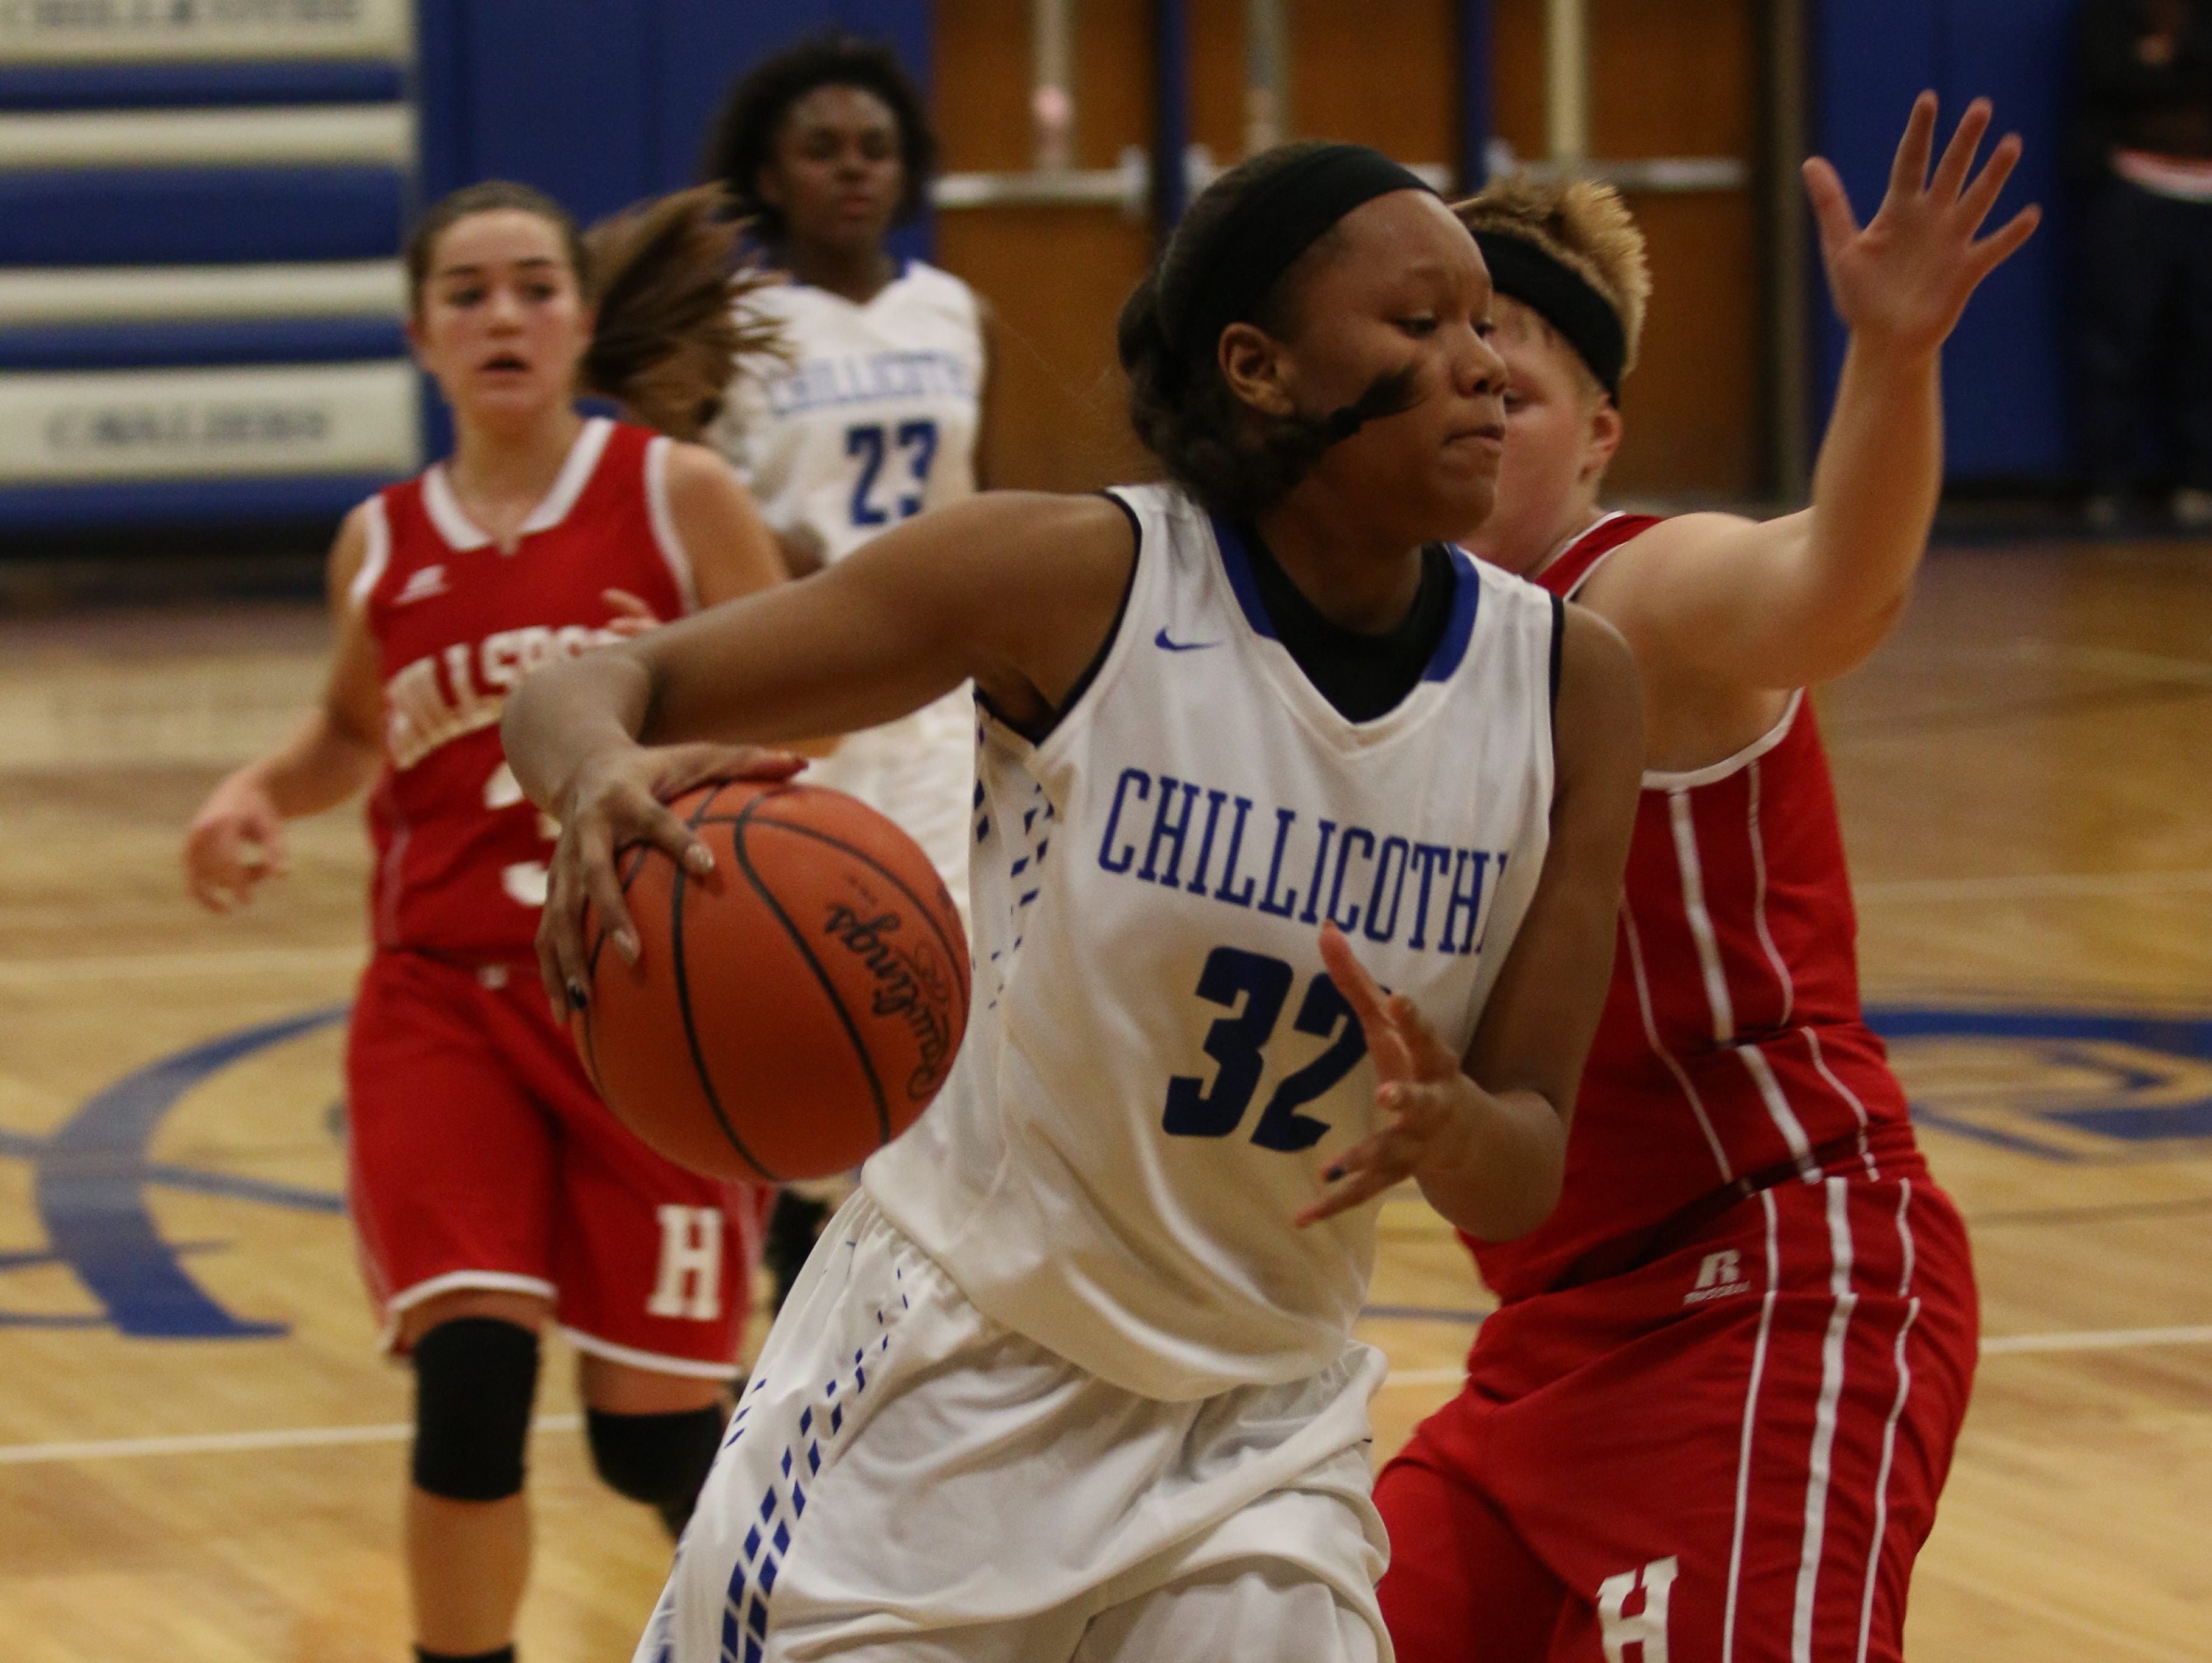 Chillicothe's Osh Brown drives to the basket against Hillsboro earlier this week. In two games, Brown is averaging 19 points and 15 rebounds per contest.